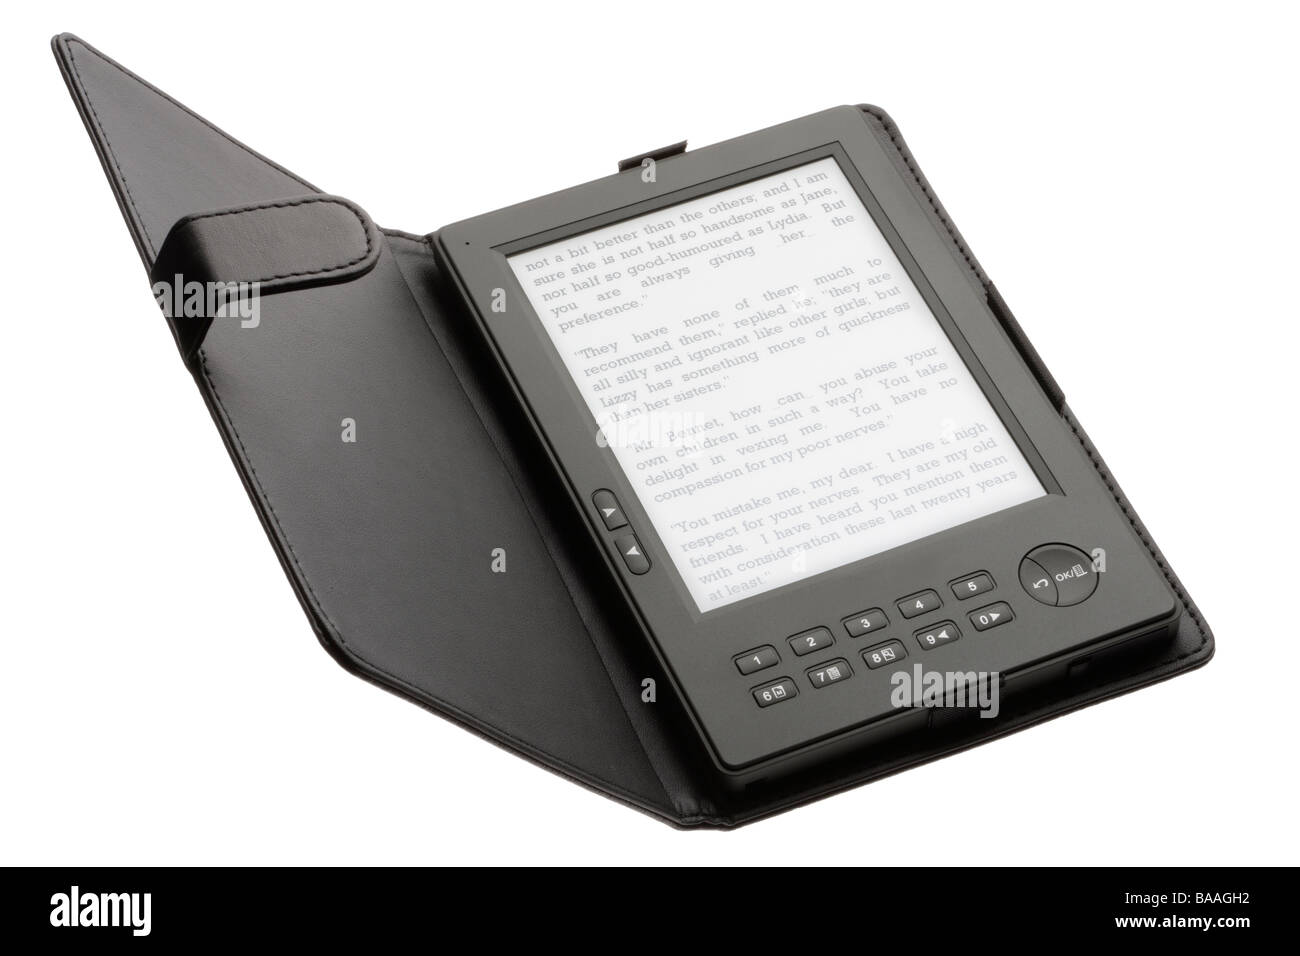 Electronic book or ebook reader - Stock Image